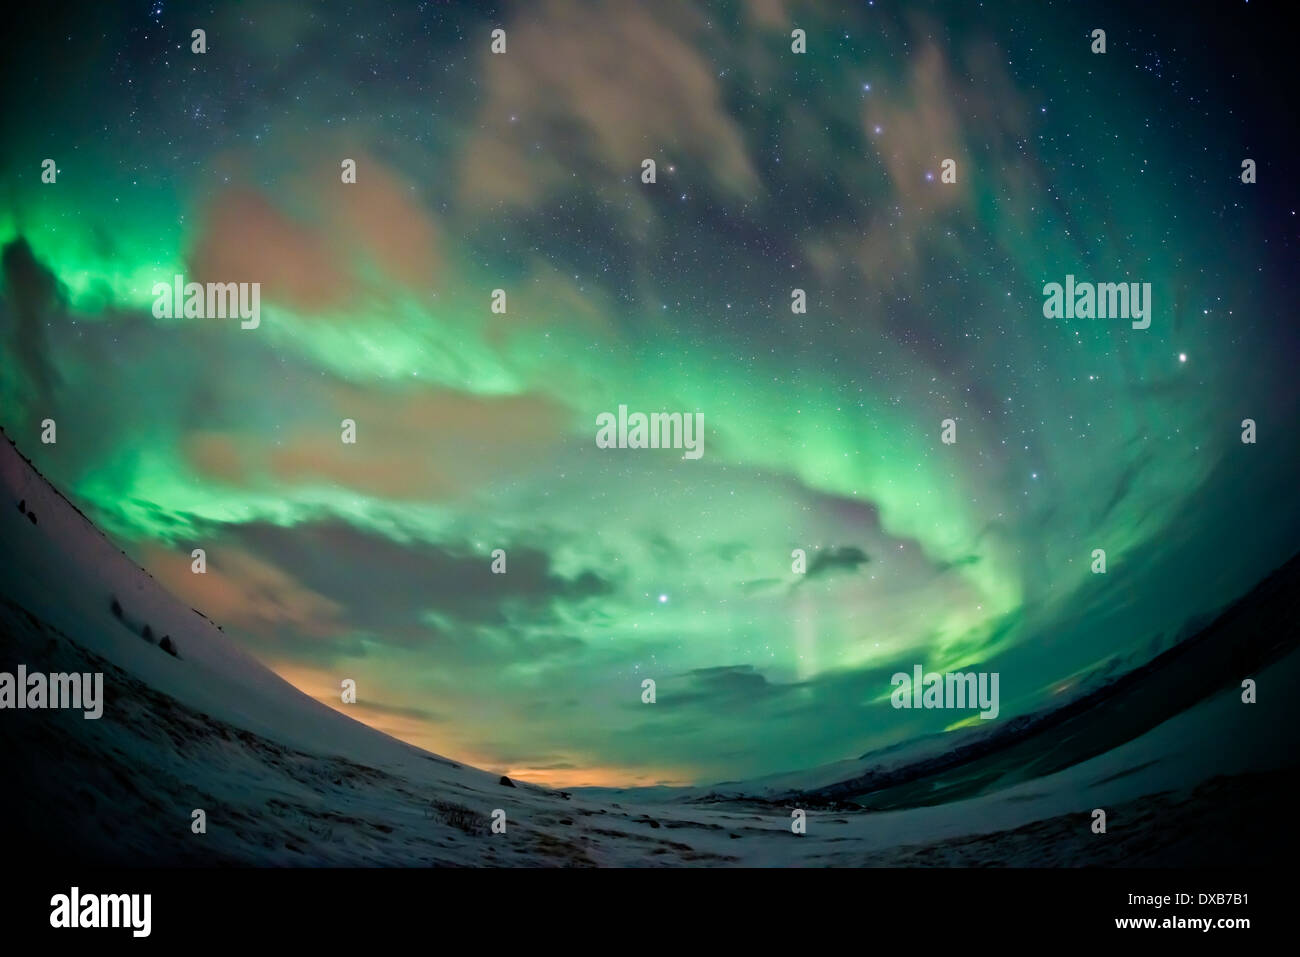 A sky filling Northern Lights (aurora borealis) display over Abisko, Northern Sweden. High ISO - contains noise. - Stock Image